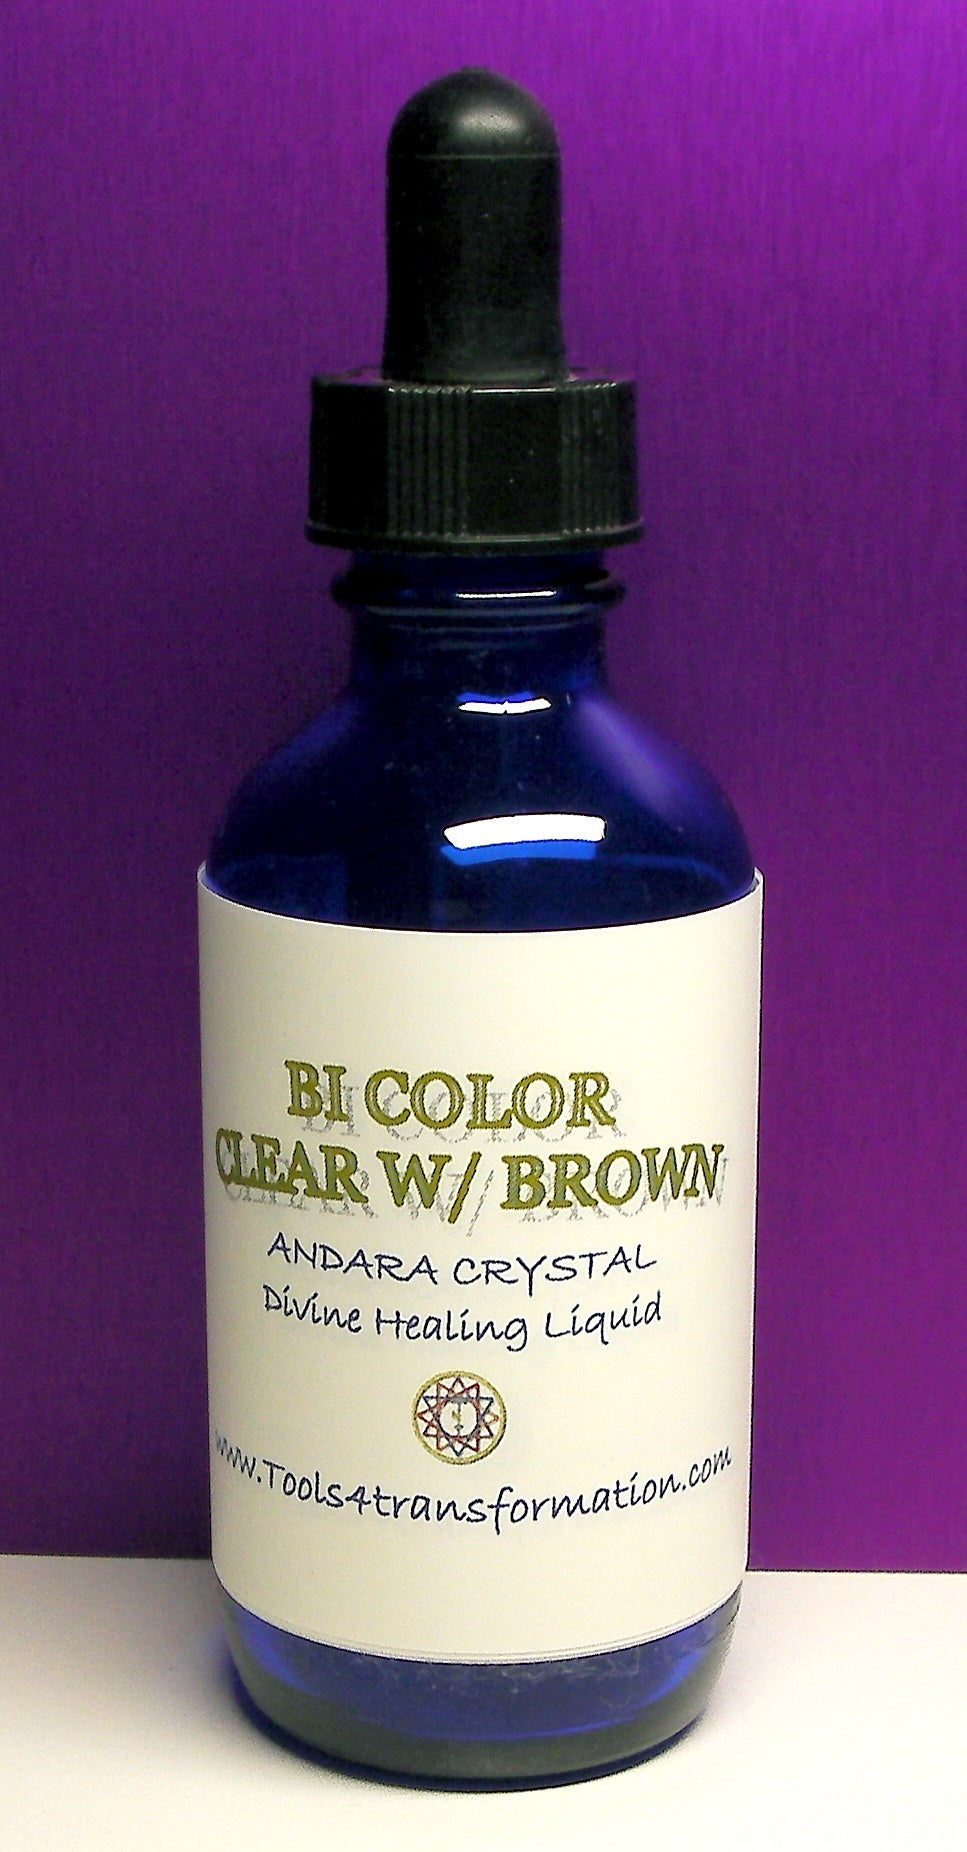 Bi-Color Clear with Brown Andara Crystal Liquid